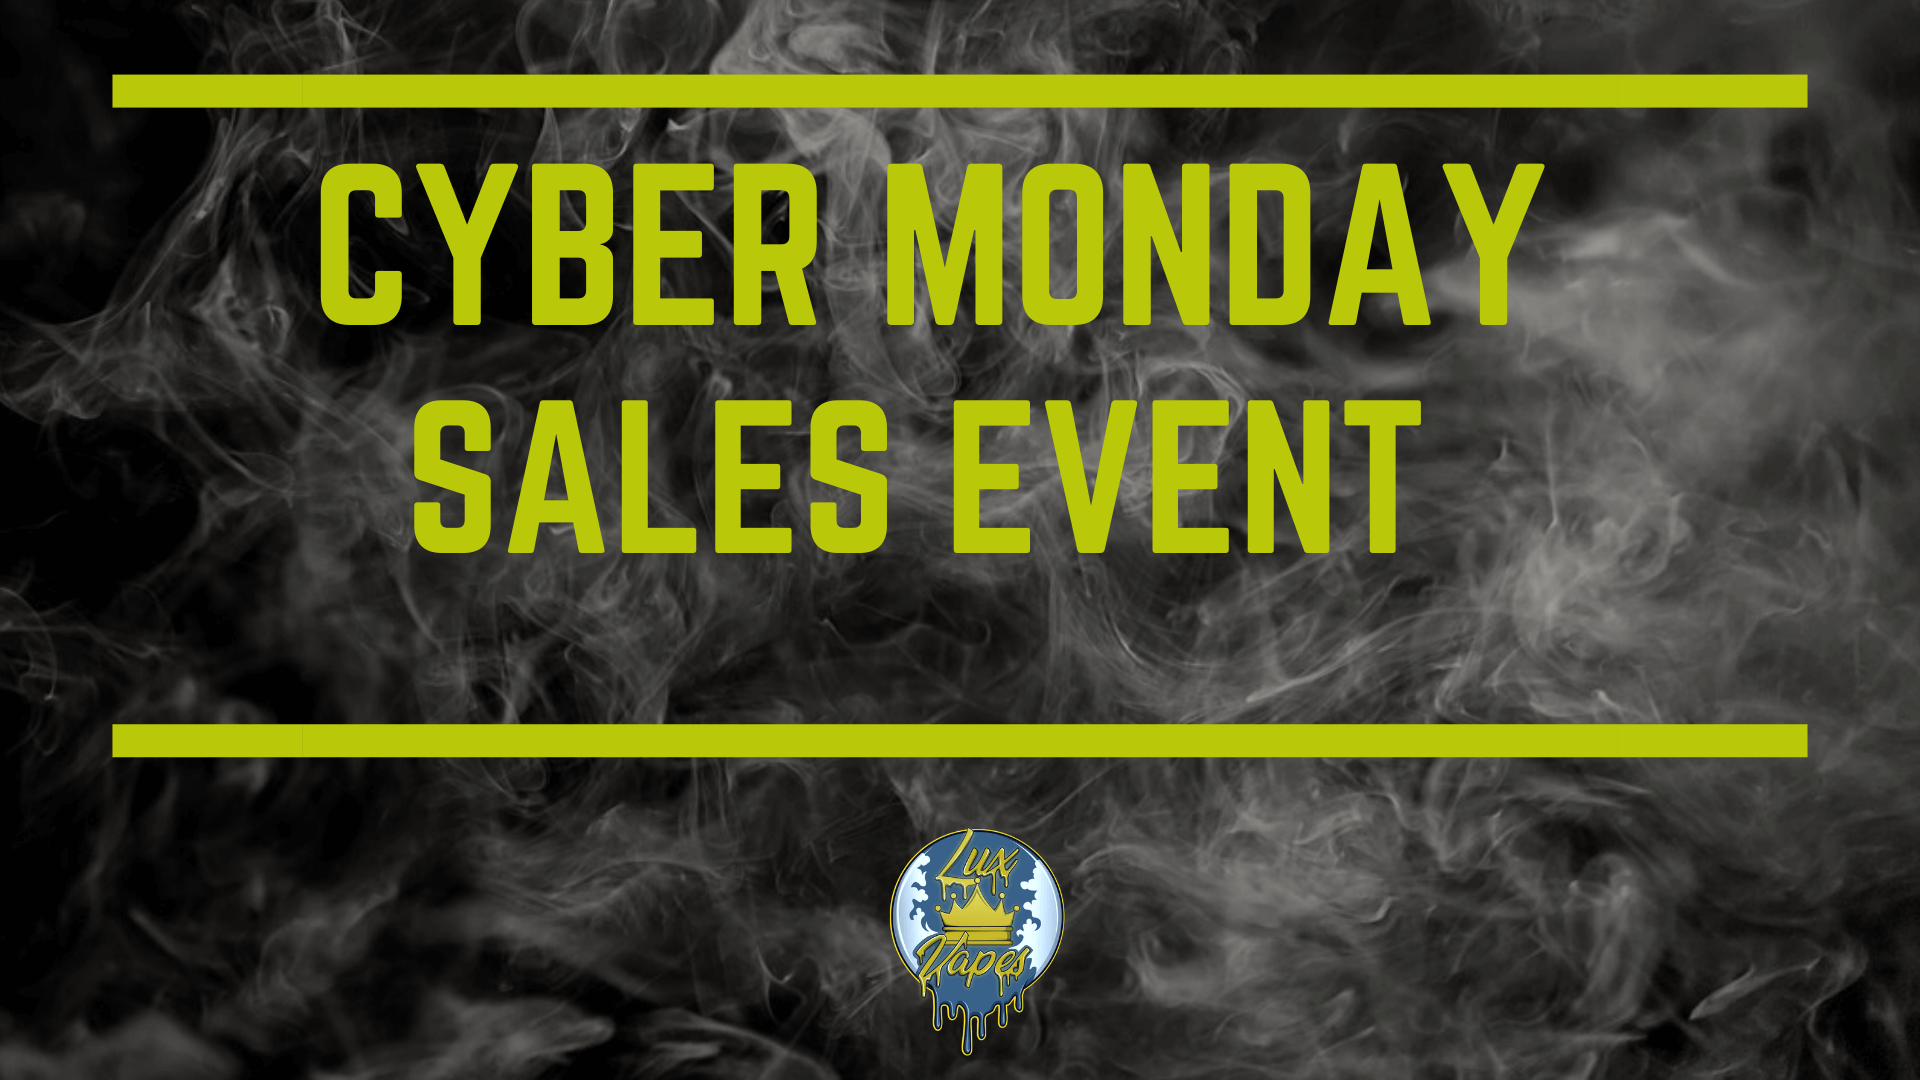 Lux Vapes Cyber Monday Sales Event